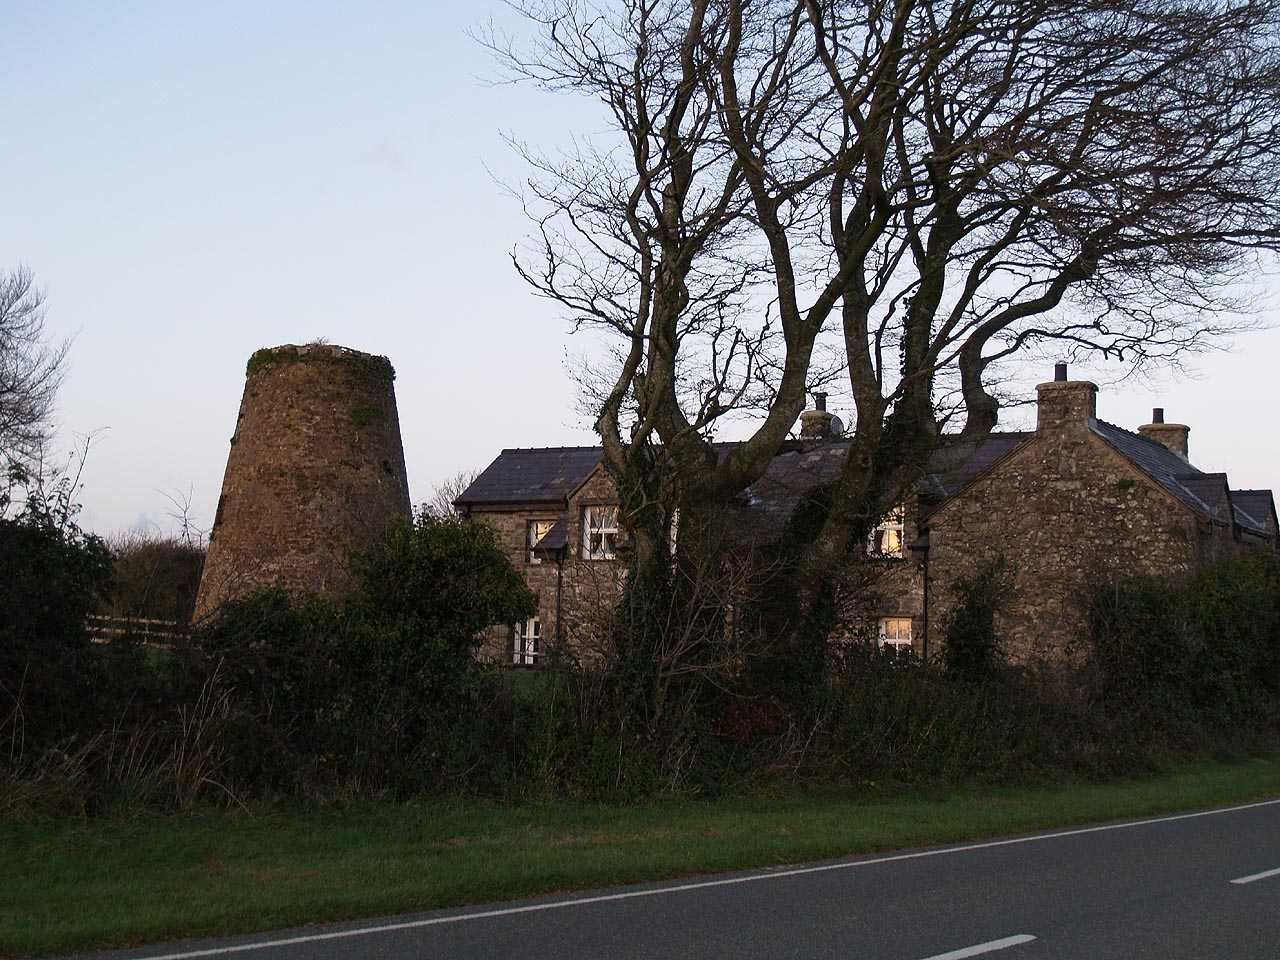 Anglesey, Capel Coch, Bryn Felin Wind Mill and House - Nov 2009